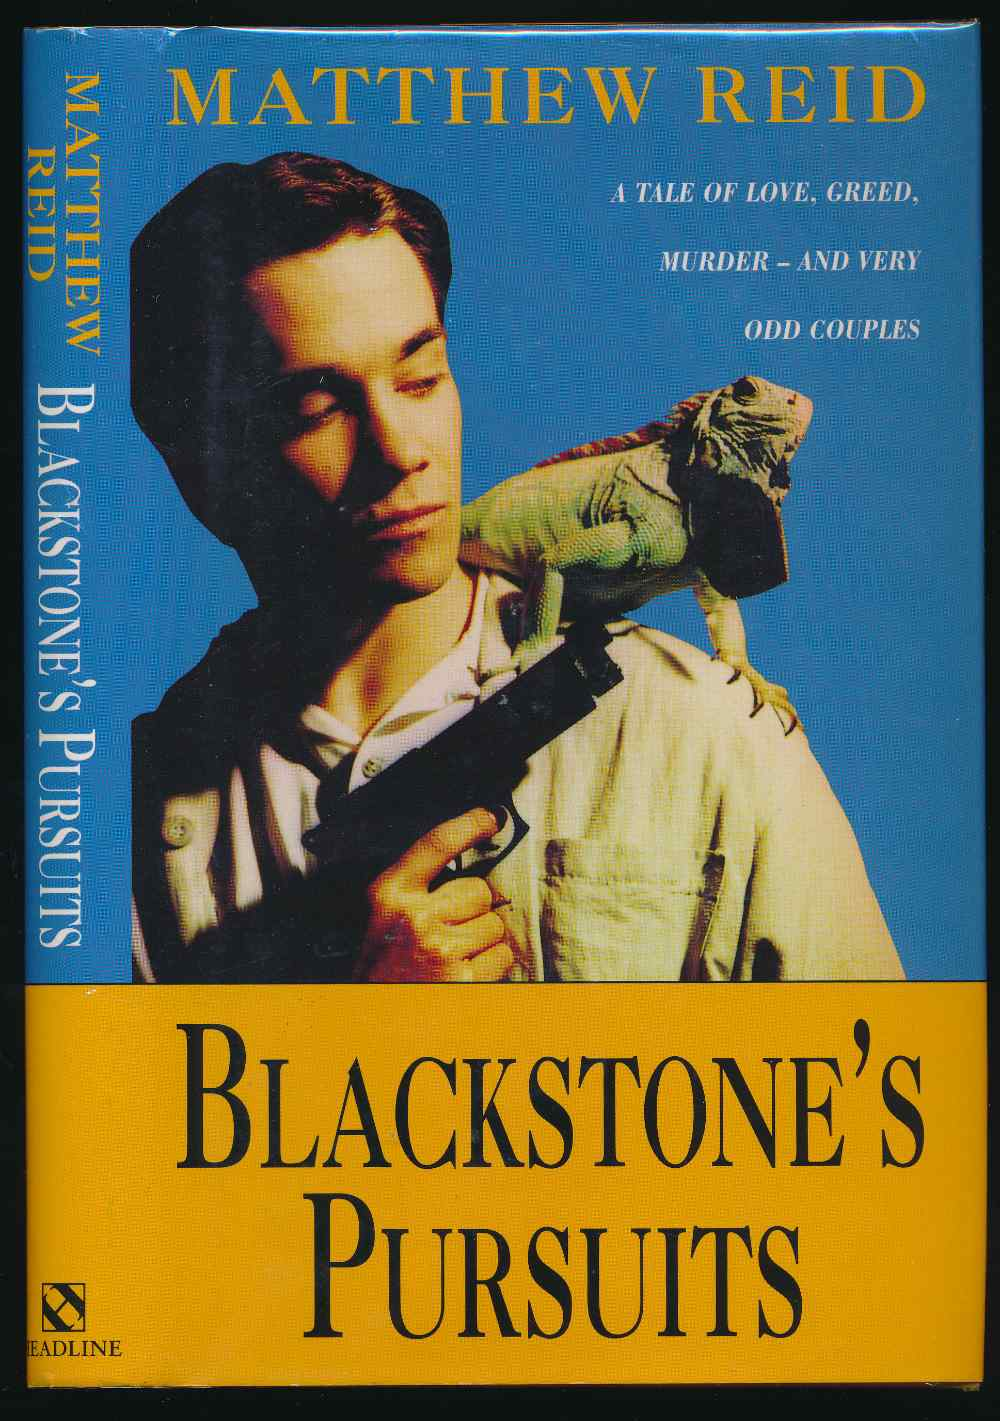 Blackstone's pursuits